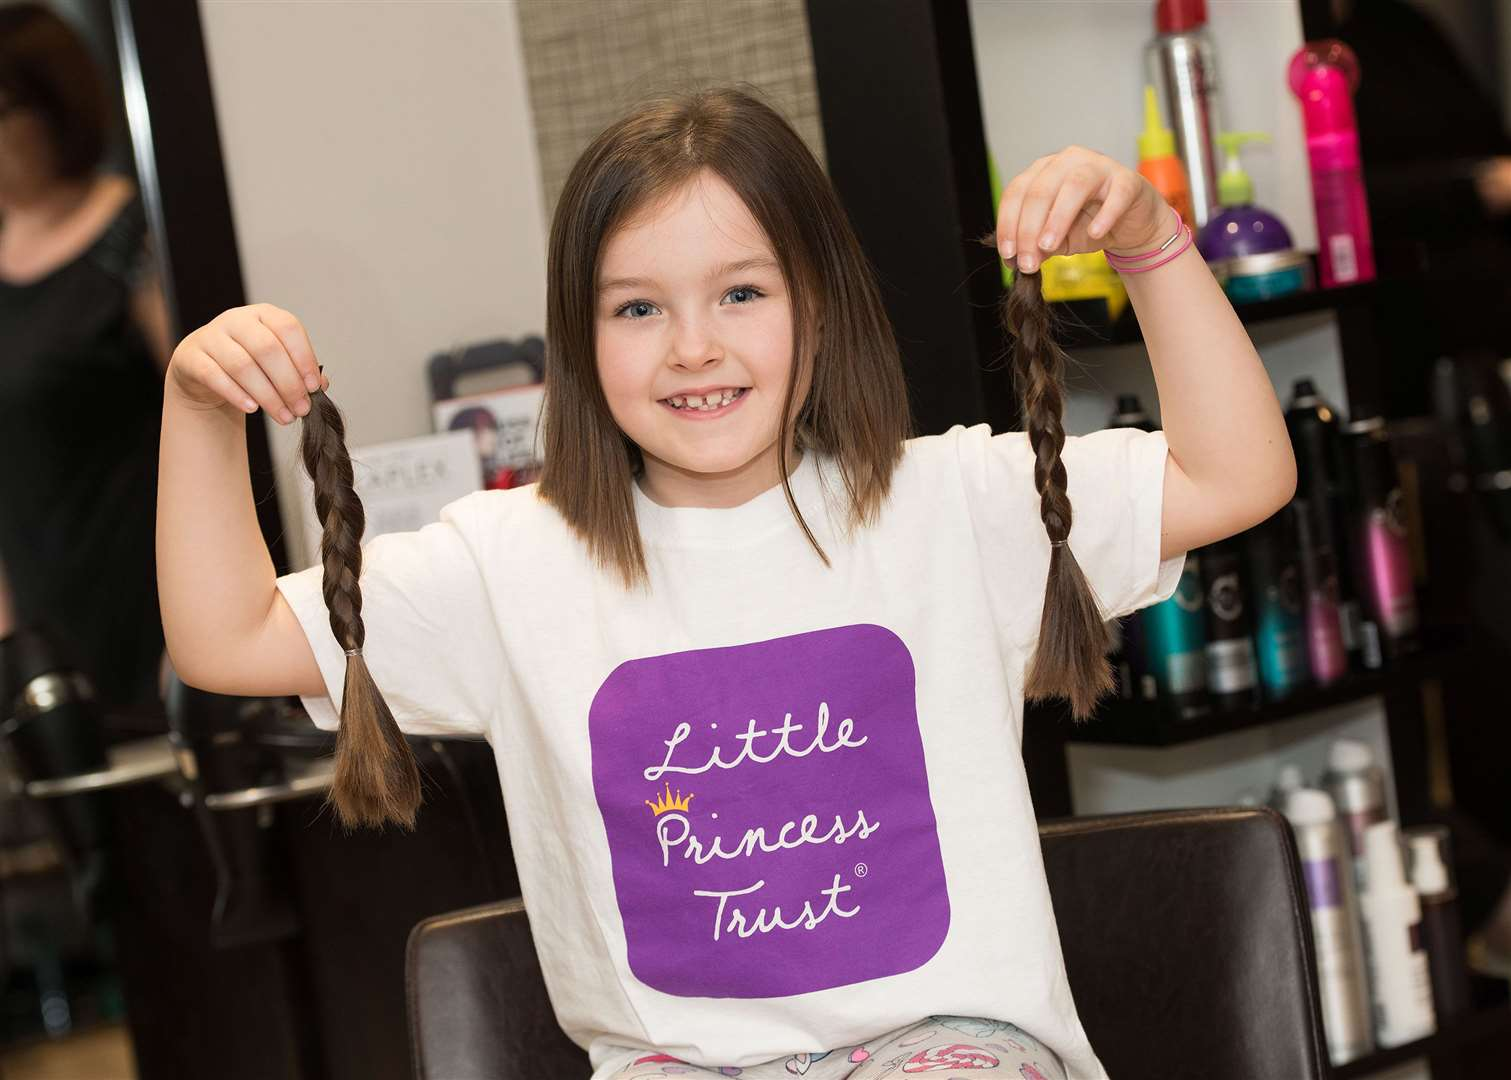 Fatal Attraction hairdressers, 25 North St, Sudbury.Jessie-May Jones, 6, who is donating her hair to the Little Princess Trust, a charity which provides wigs for young people who lose their hair through cancer treatment. Picture Mark Westley. (7752139)